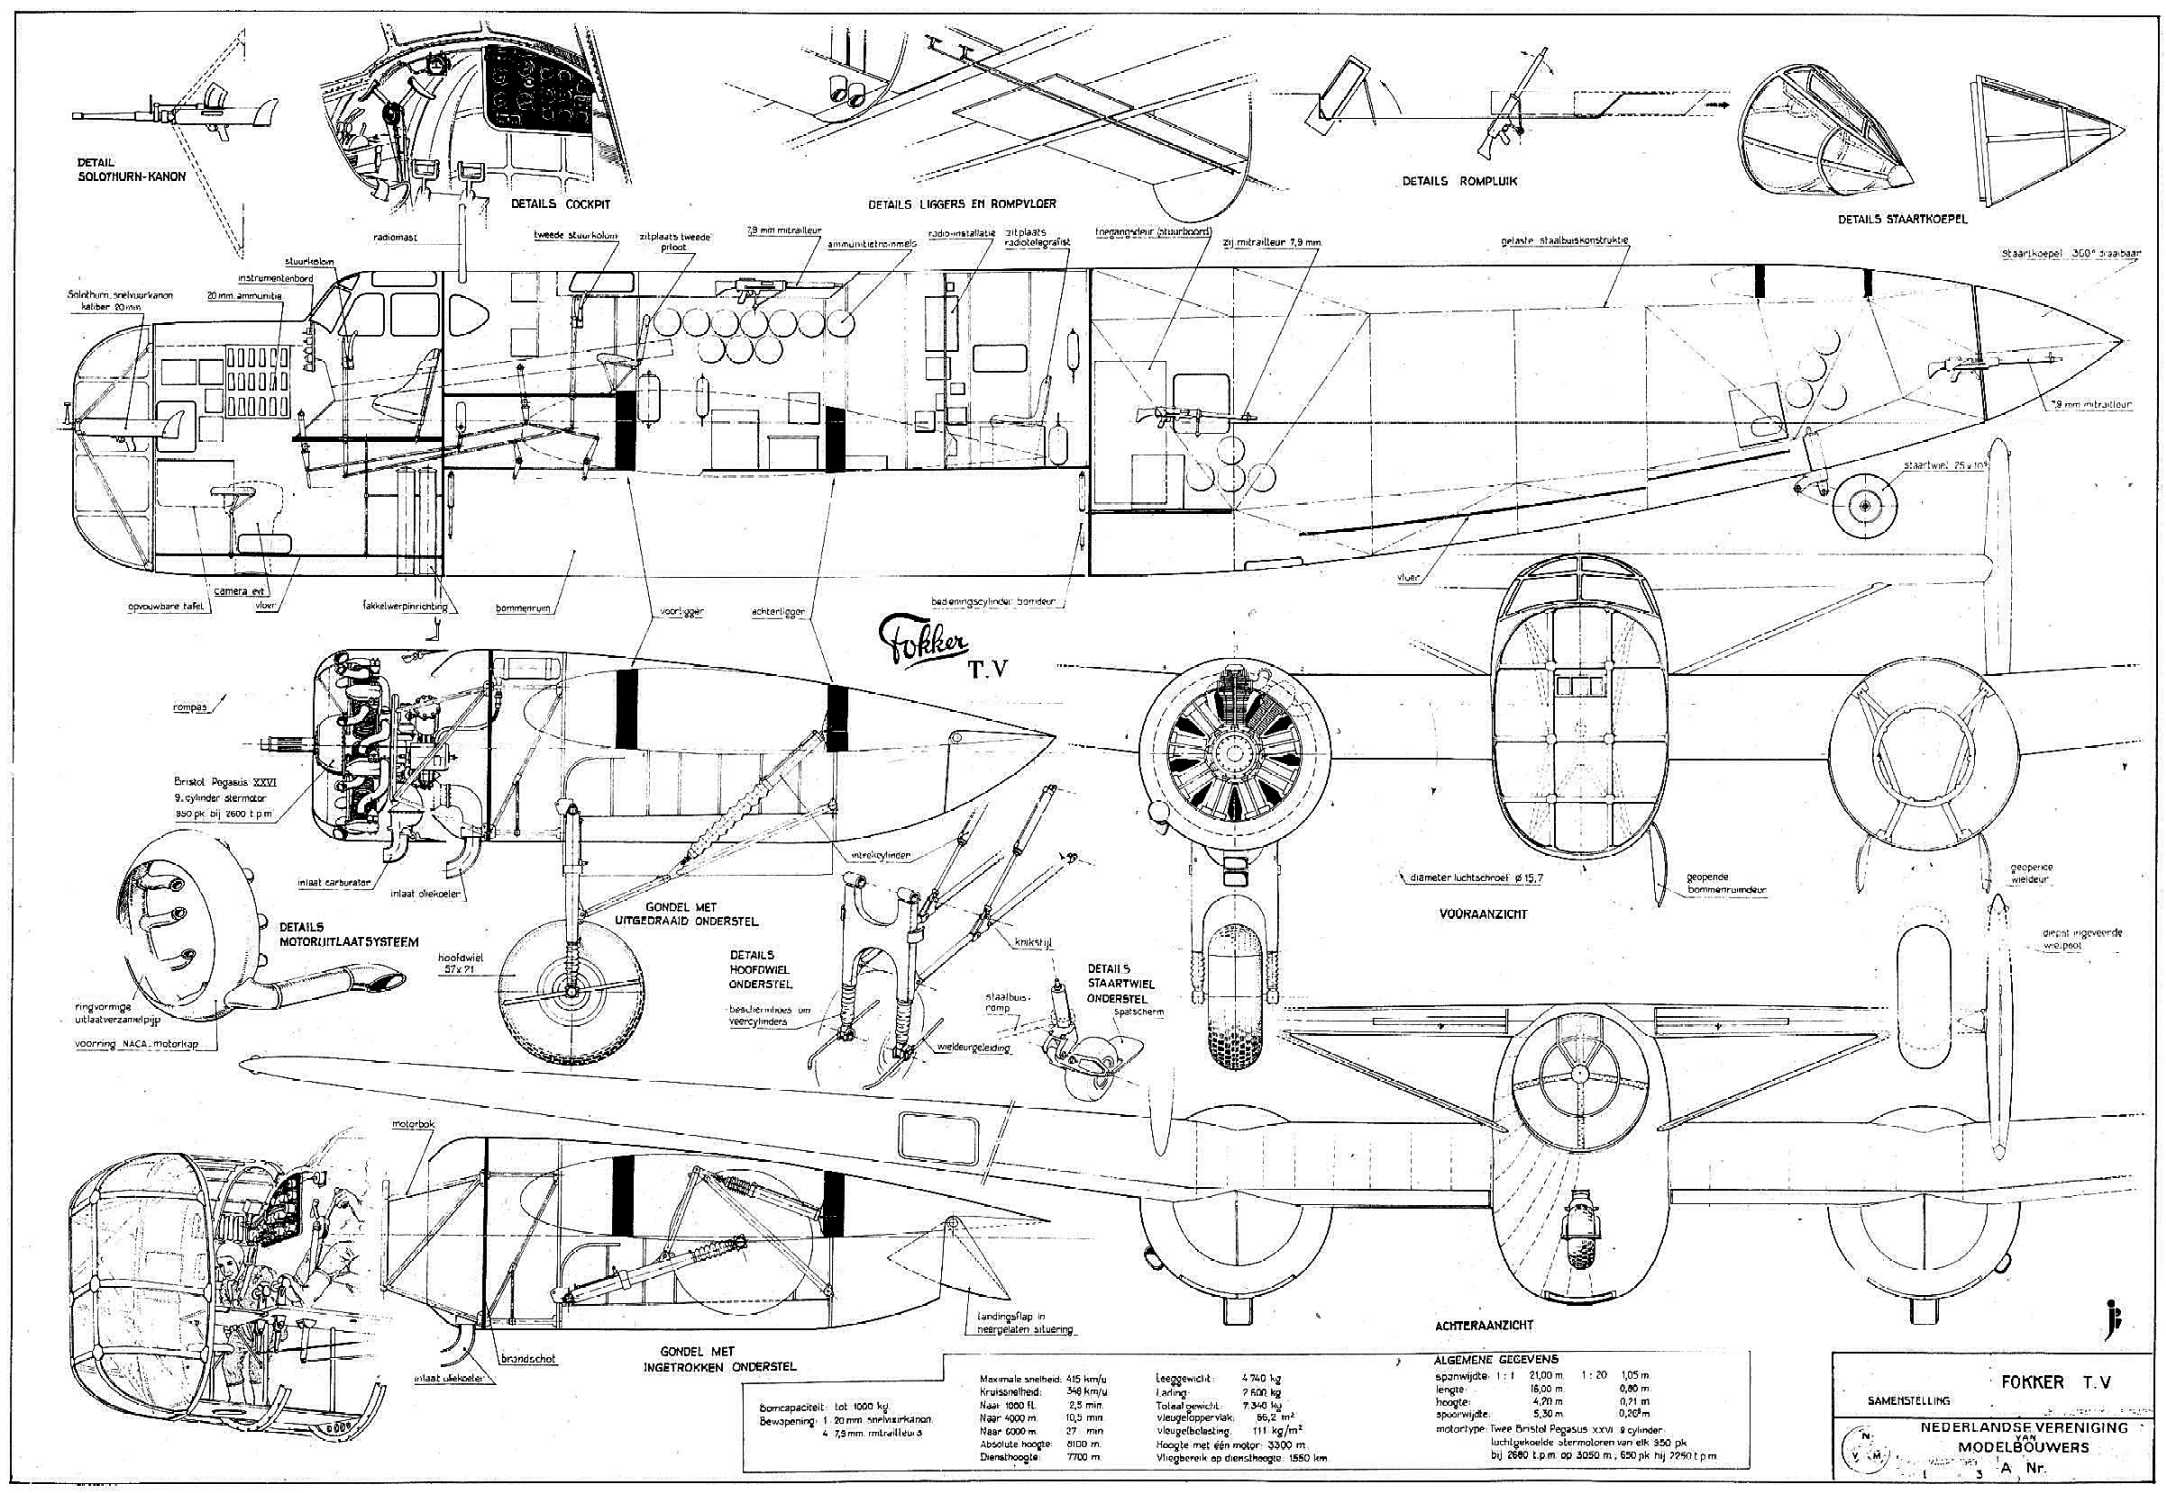 Data Sheet Fokker T V